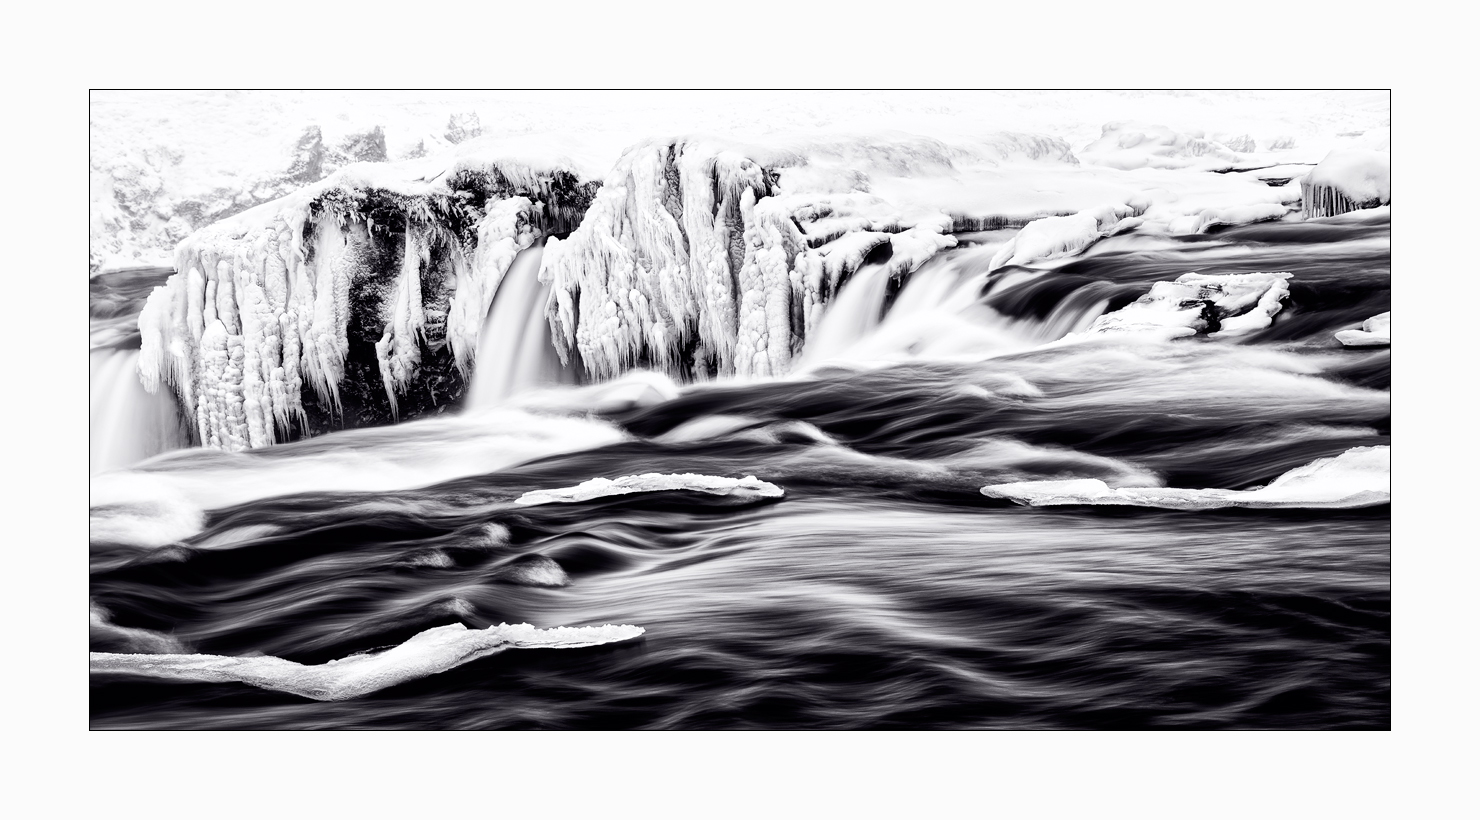 Fine art image of the upper waters of Godafoss in winter in Iceland.